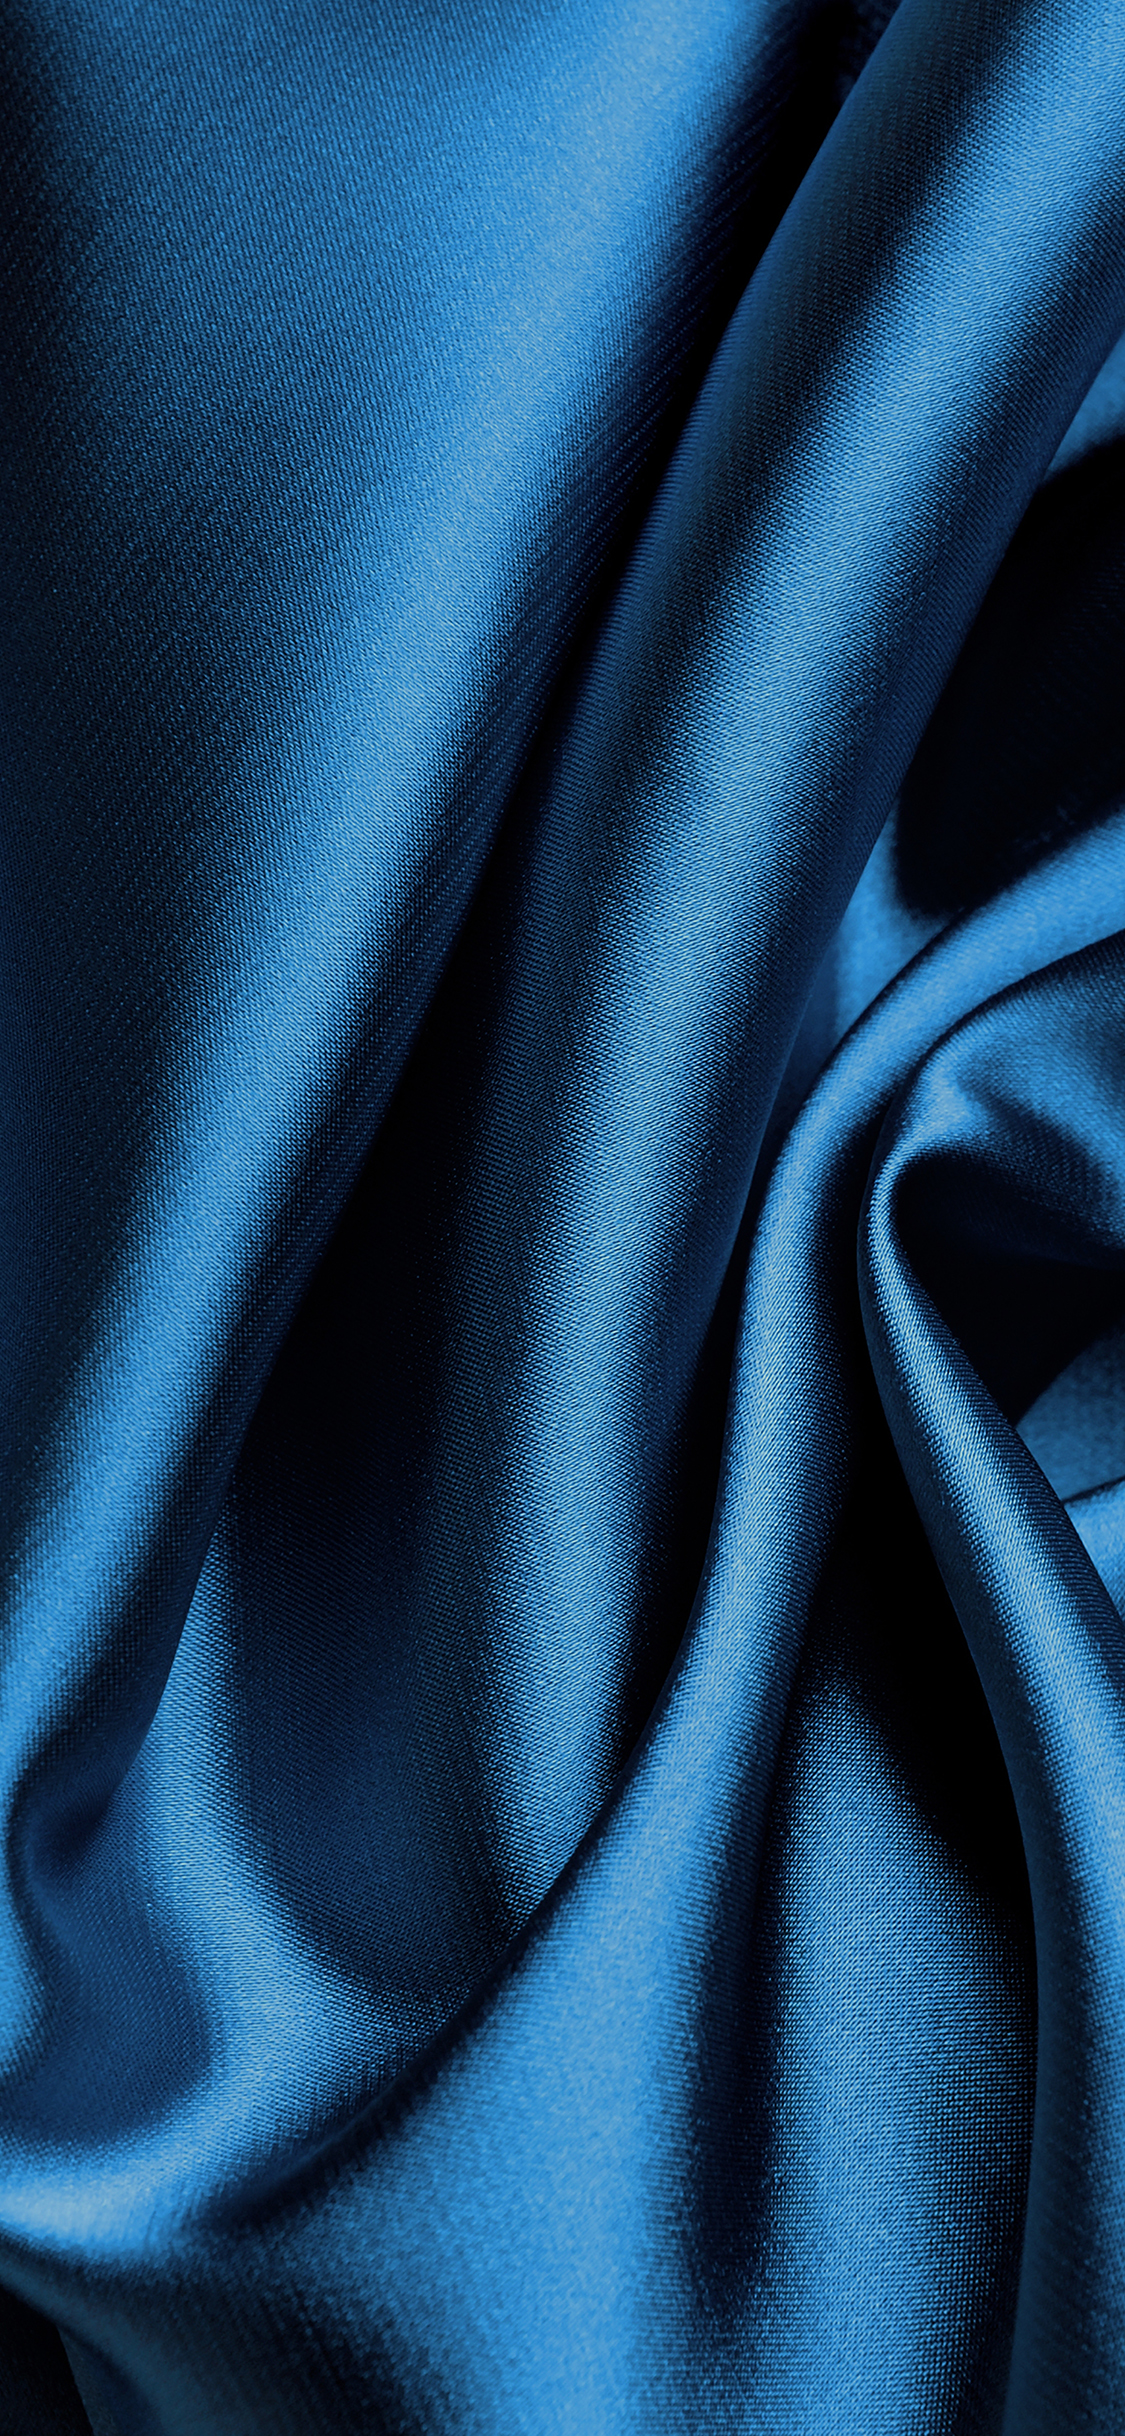 iPhoneXpapers.com-Apple-iPhone-wallpaper-vf71-texture-fabric-blue-gorgeous-pattern